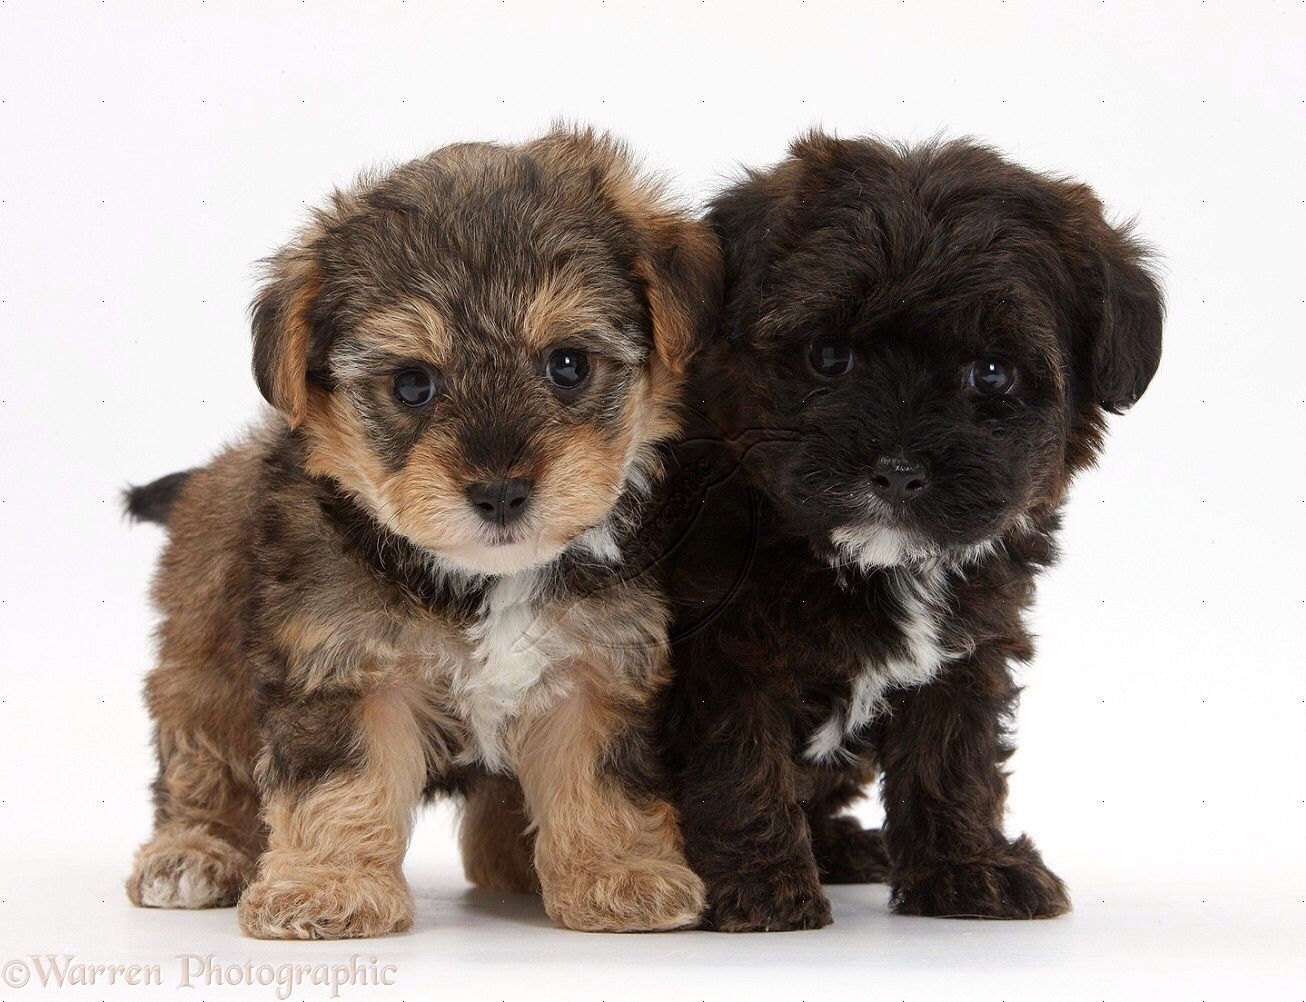 Yorkipoo ... I think it's time for a puppy!